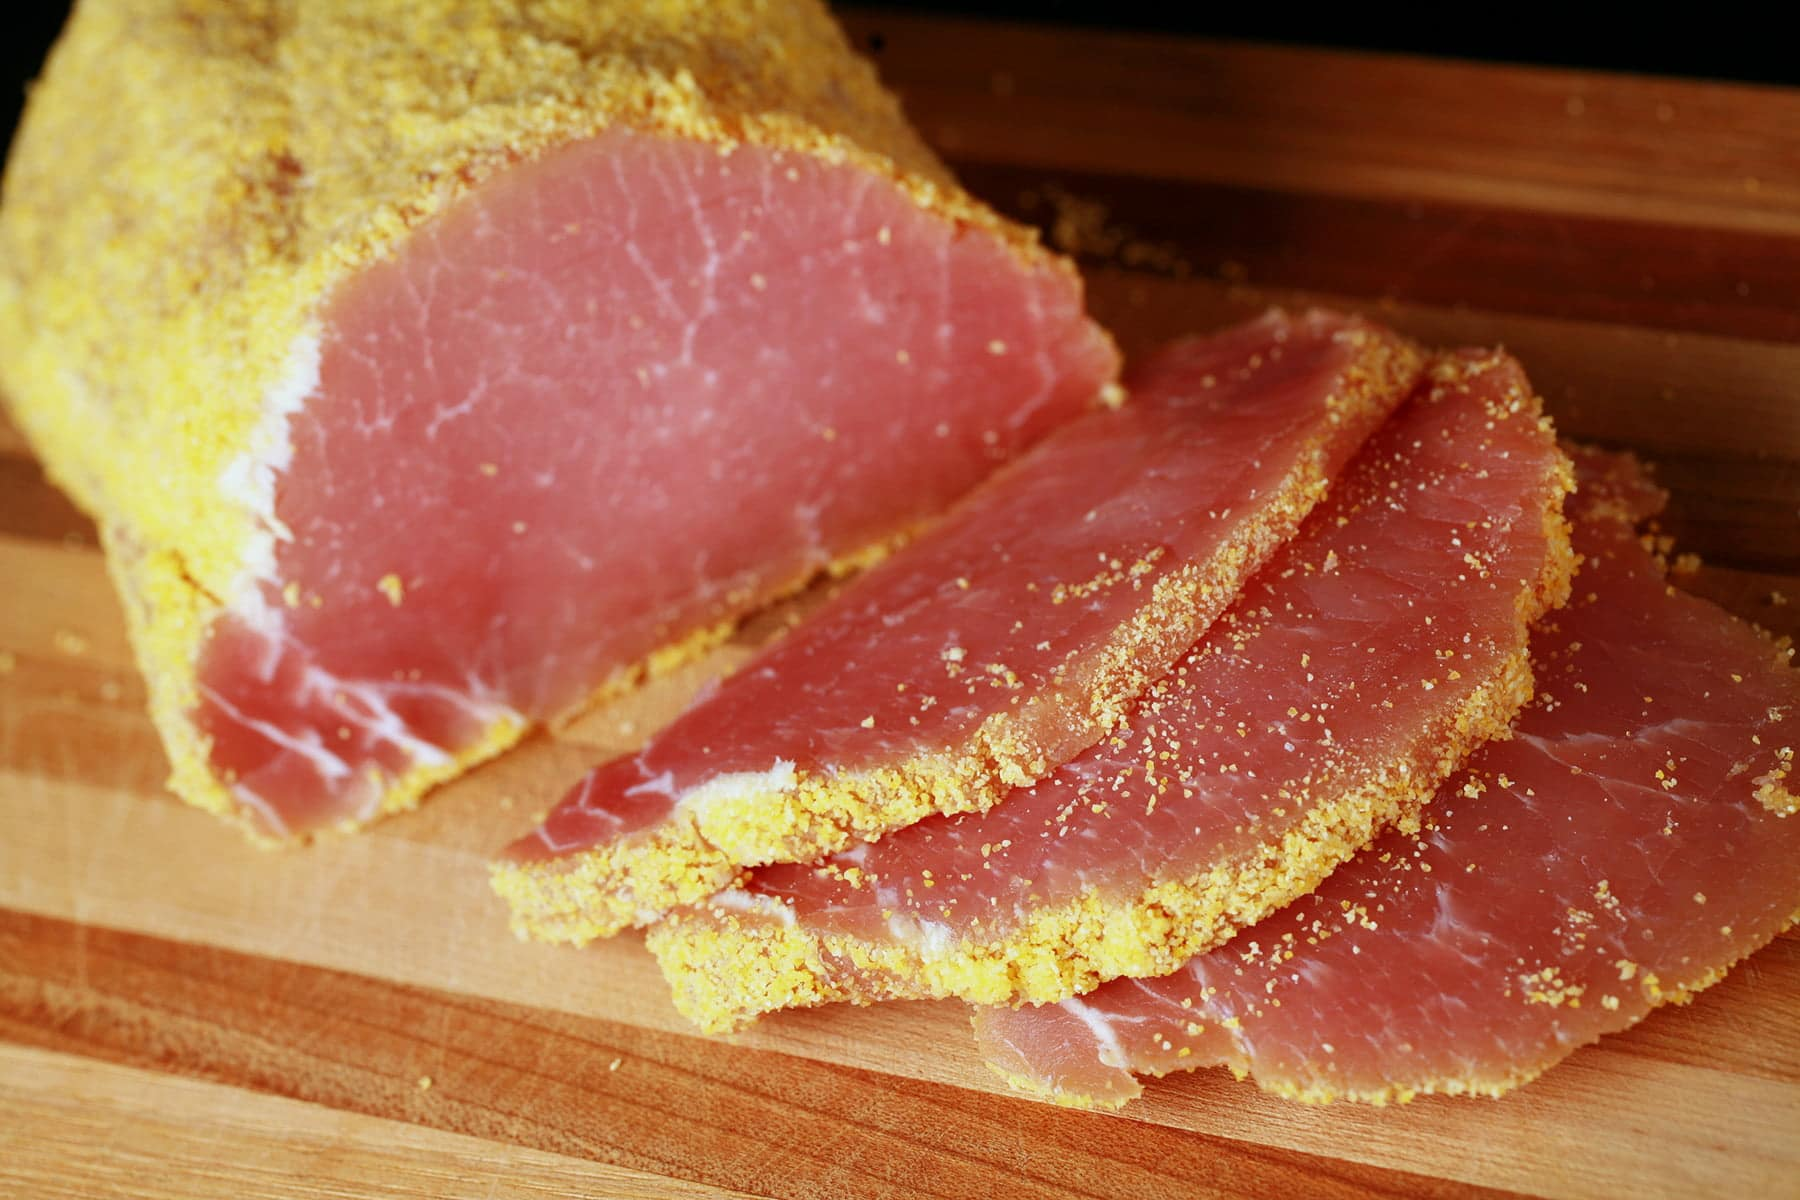 A cured loin of pork that has been rolled in cornmeal and sliced - proper pea meal bacon!